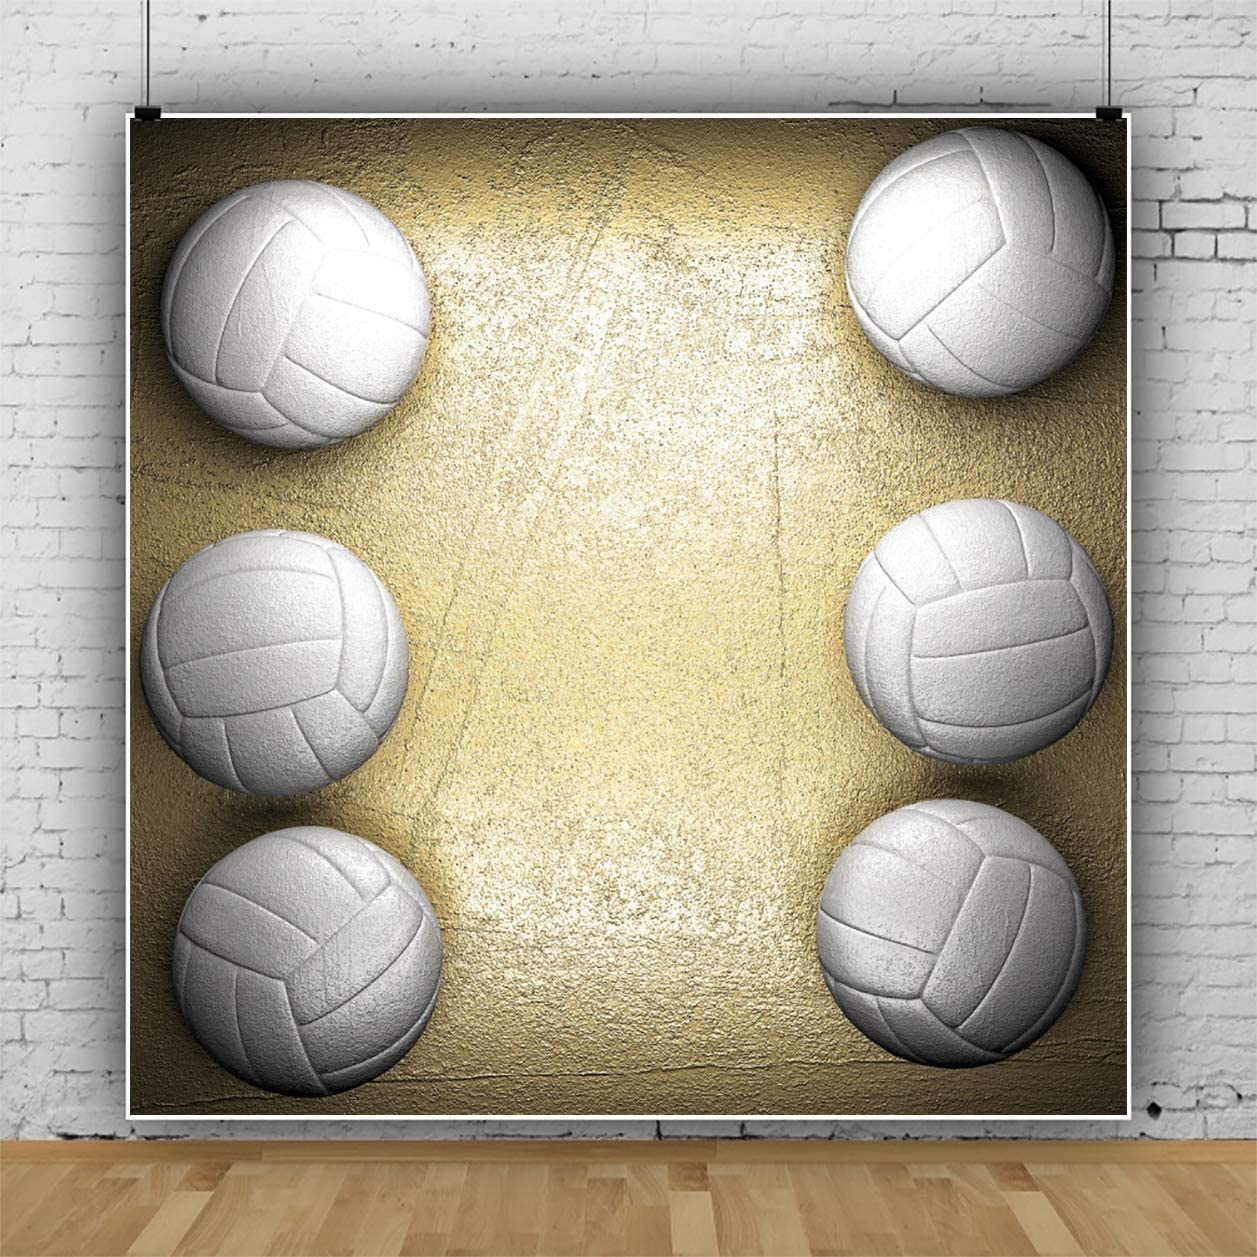 YEELE 5x5ft White Volleyball Photography Backdrop Kids Birthday Party Background Sport Theme Baby Shower 1st First Birthday Party Decoration Baby Toddler Boys Artistic Portrait Photo Booth Props